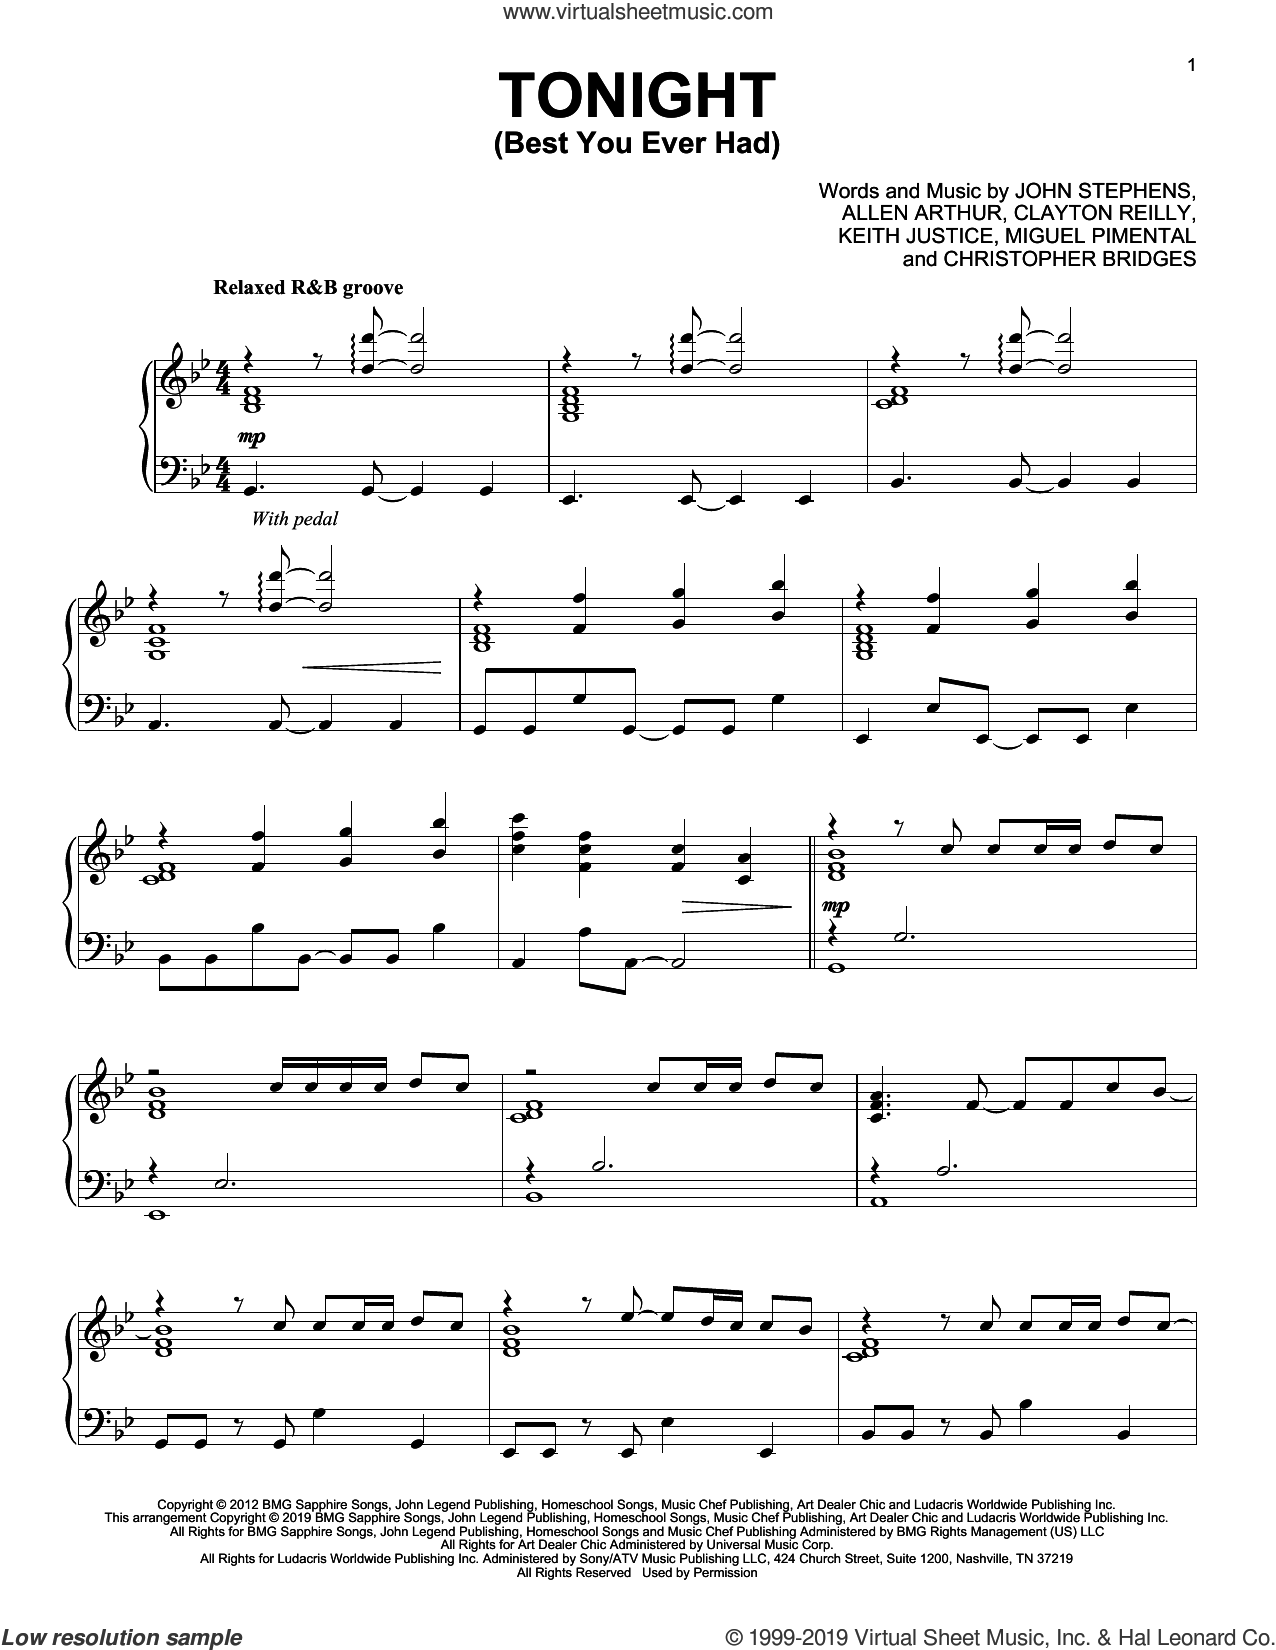 Tonight (Best You Ever Had) (feat. Ludacris) (from Think Like a Man) sheet music for piano solo by John Legend, Allen Arthur, Christopher Bridges, Clayton Reilly, John Stephens, Keith Justice and Miguel Pimental, intermediate skill level